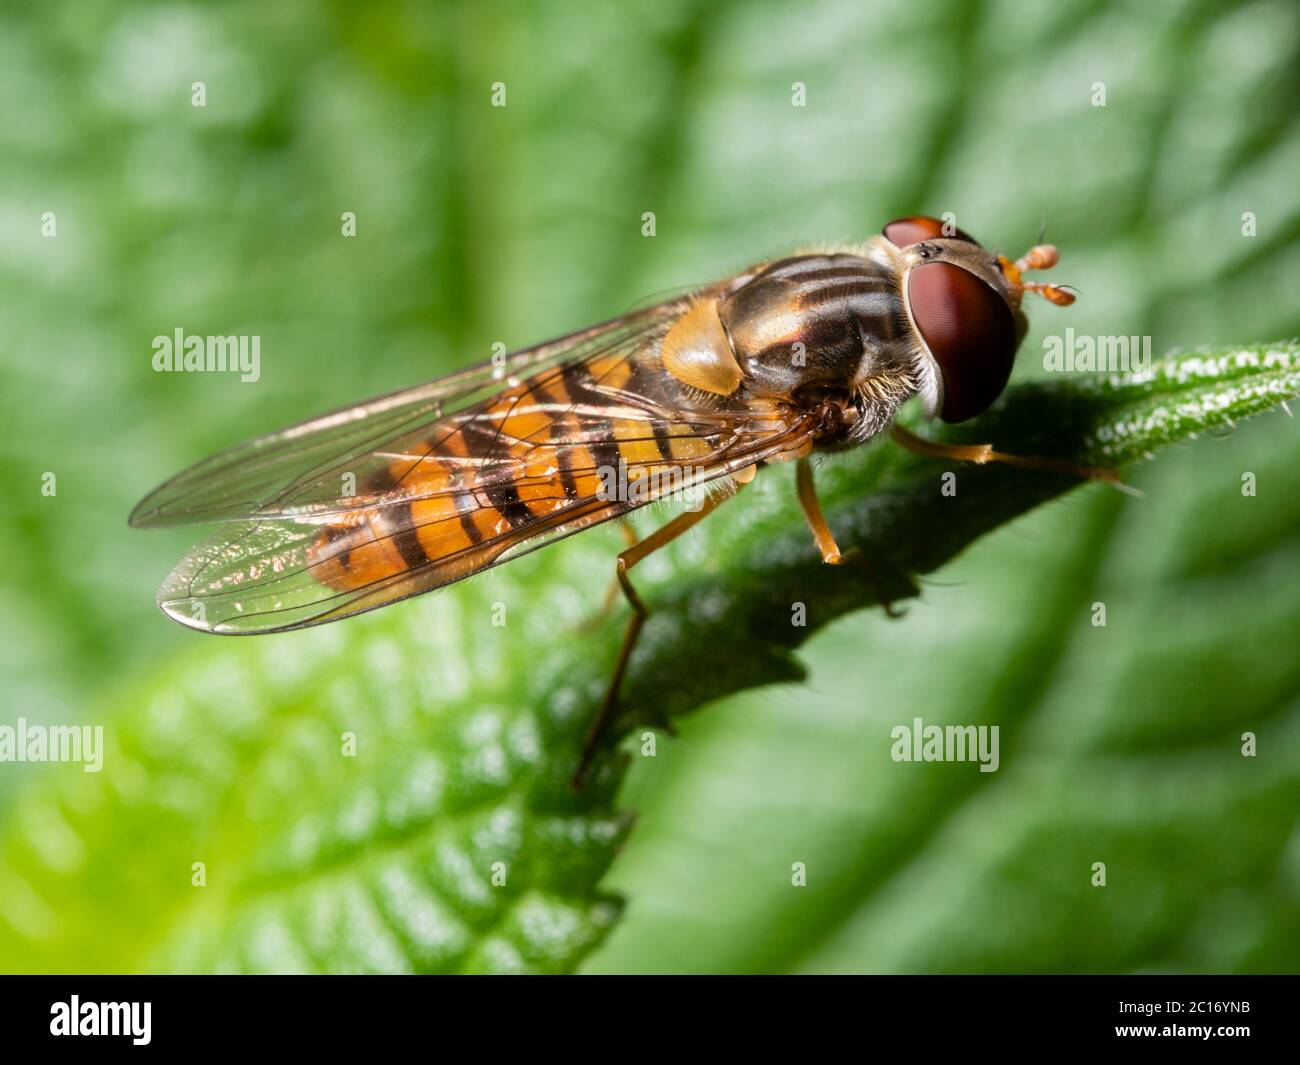 Orange and black banded adult male wasp mimic marmalade hoverfly, Episyrphus balteatus, in a UK garden Stock Photo